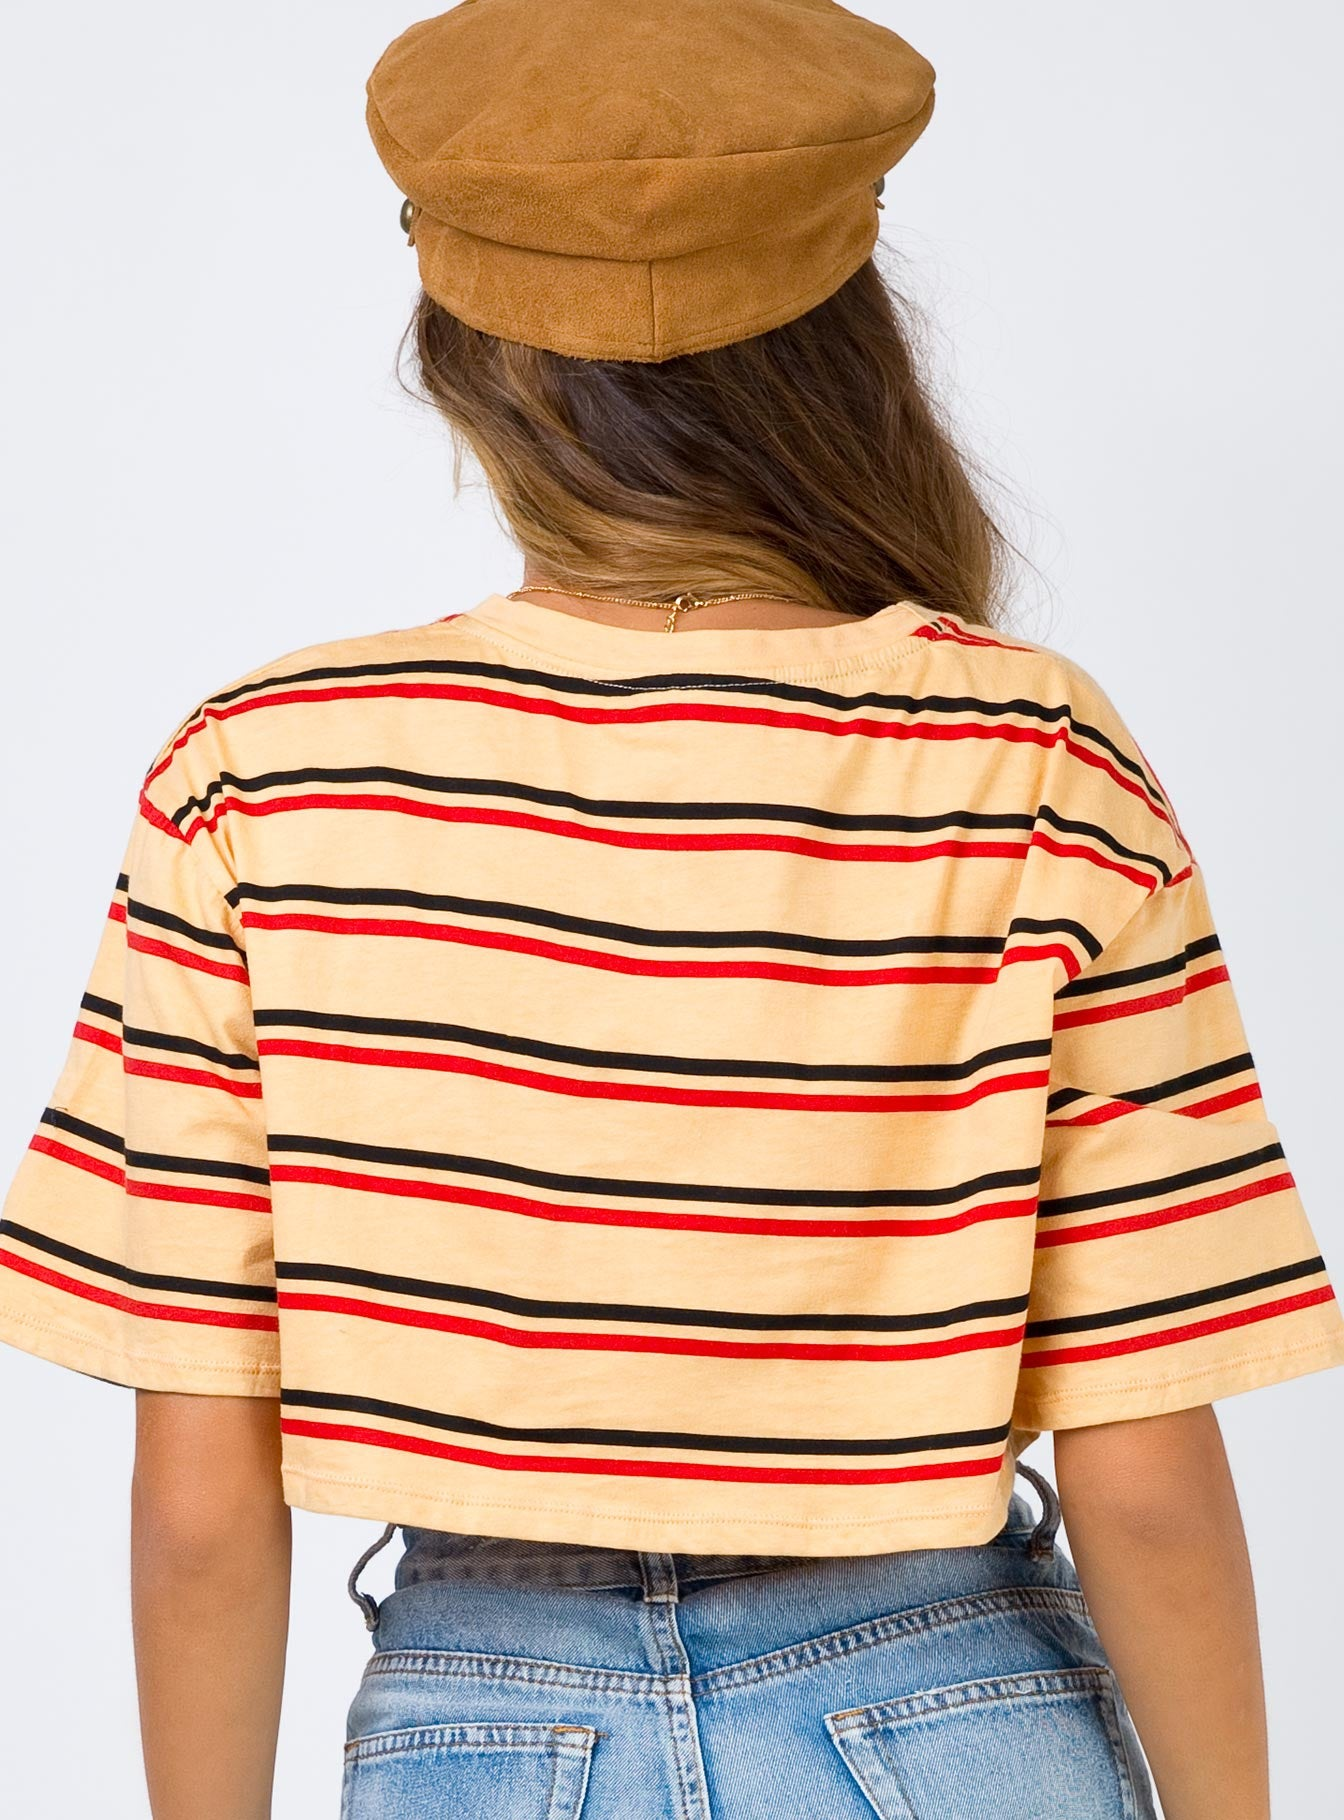 Motel Super Crop Tee 70's Stripe Mustard Horizontal